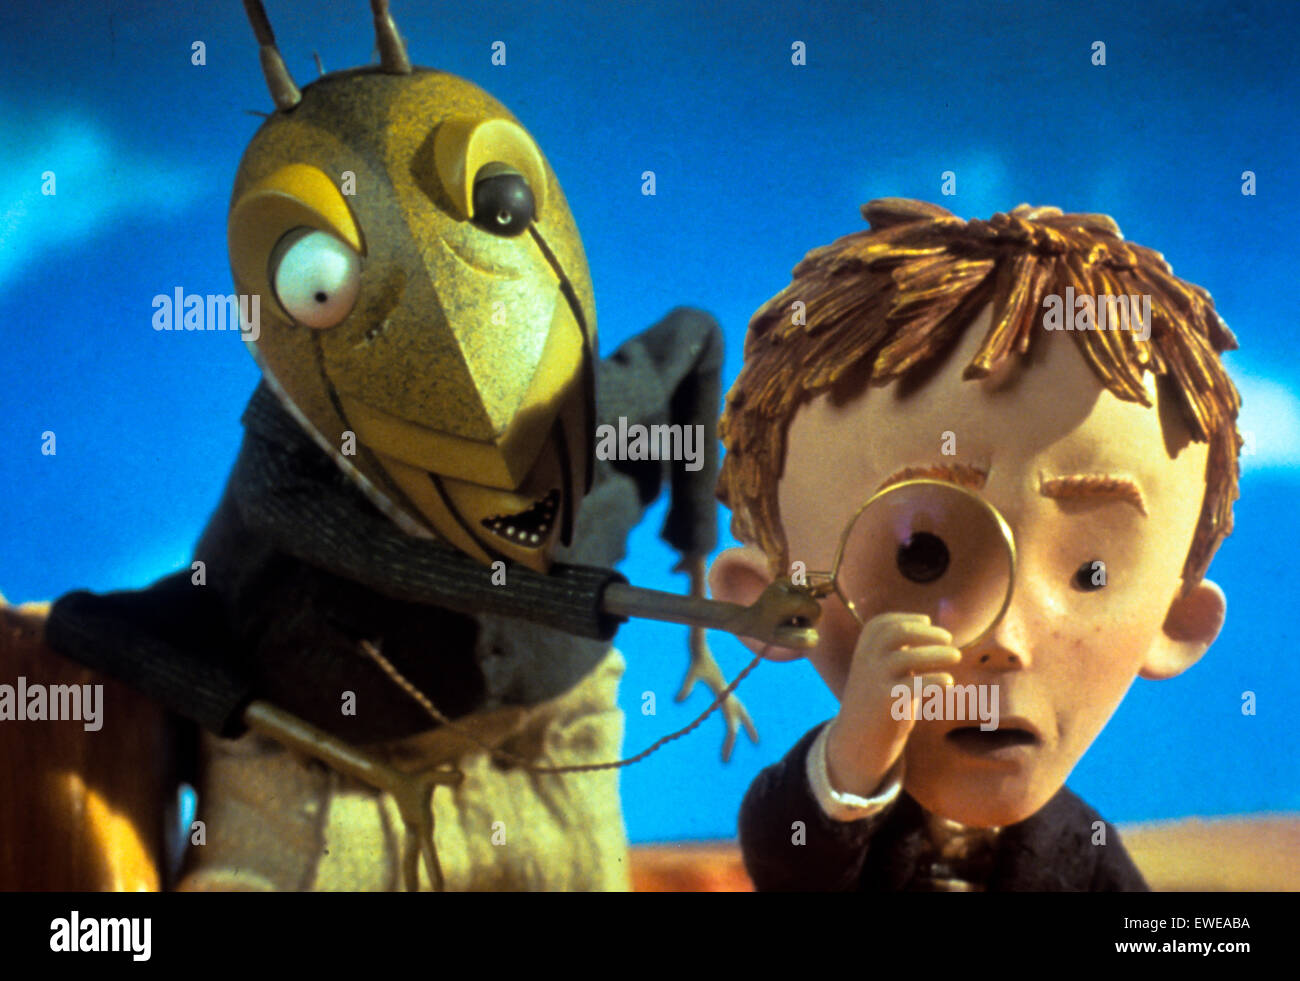 James and the giant peach - Stock Image